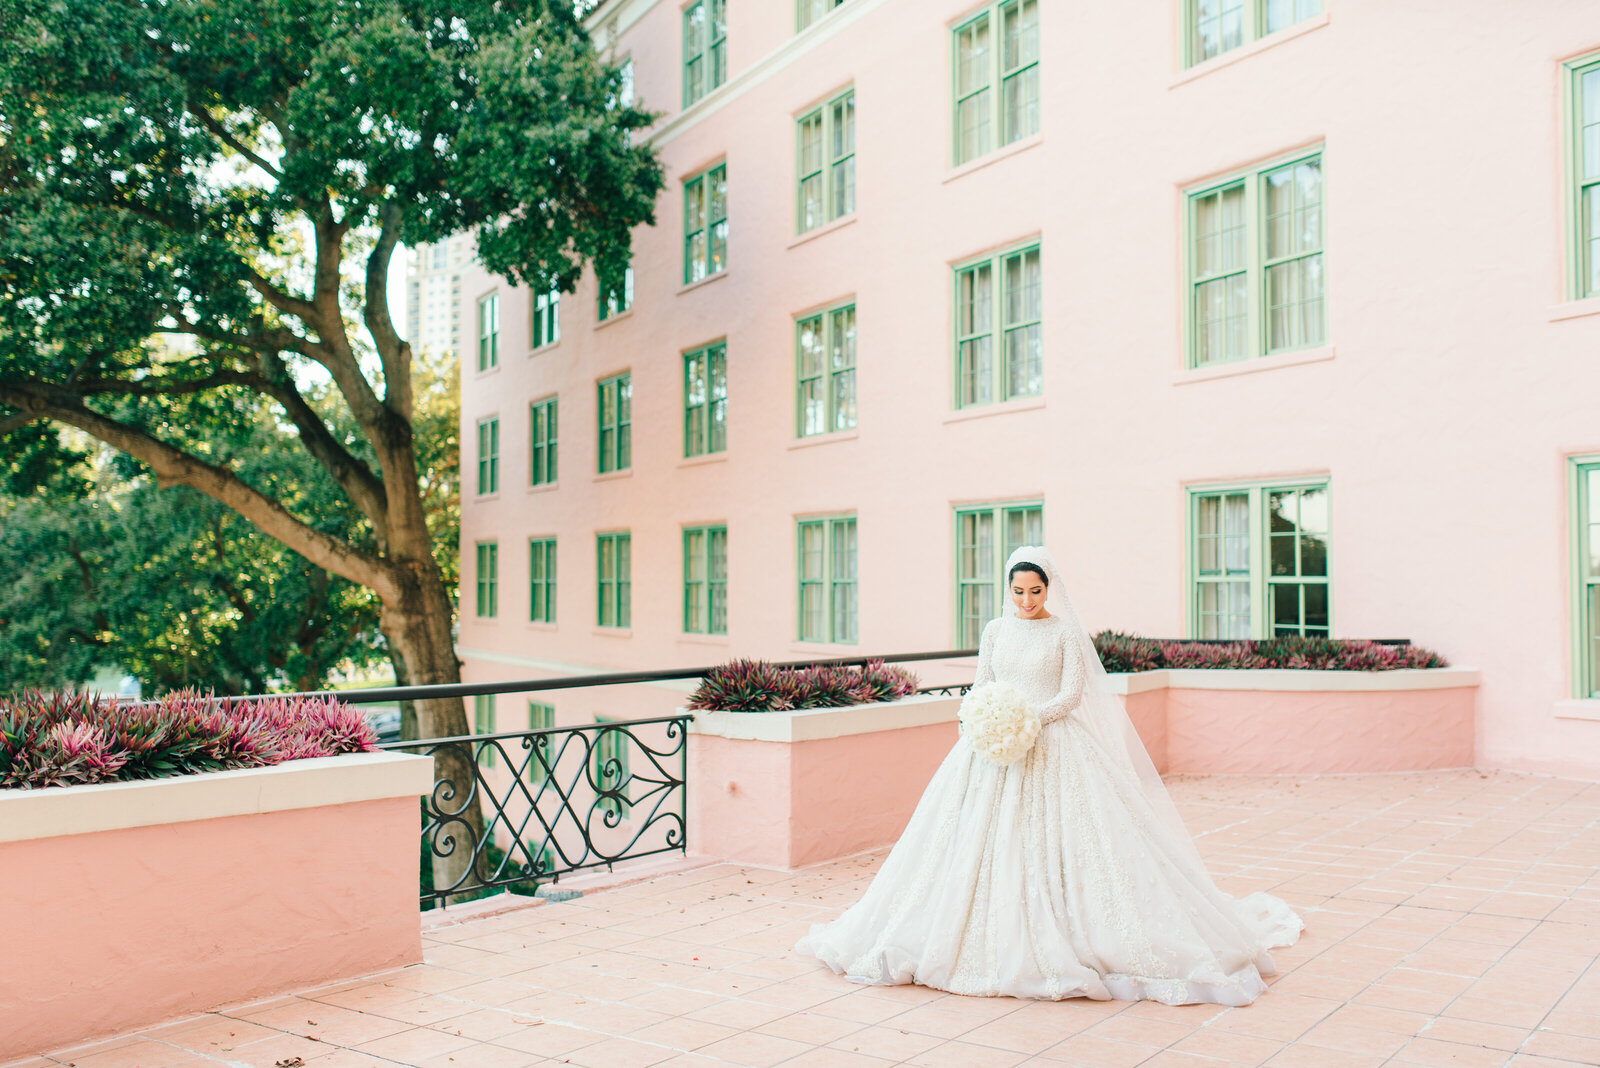 Bride wearing a luxury gown by bougainvillea at John and Mable Ringling Museum of Art in Sarasota